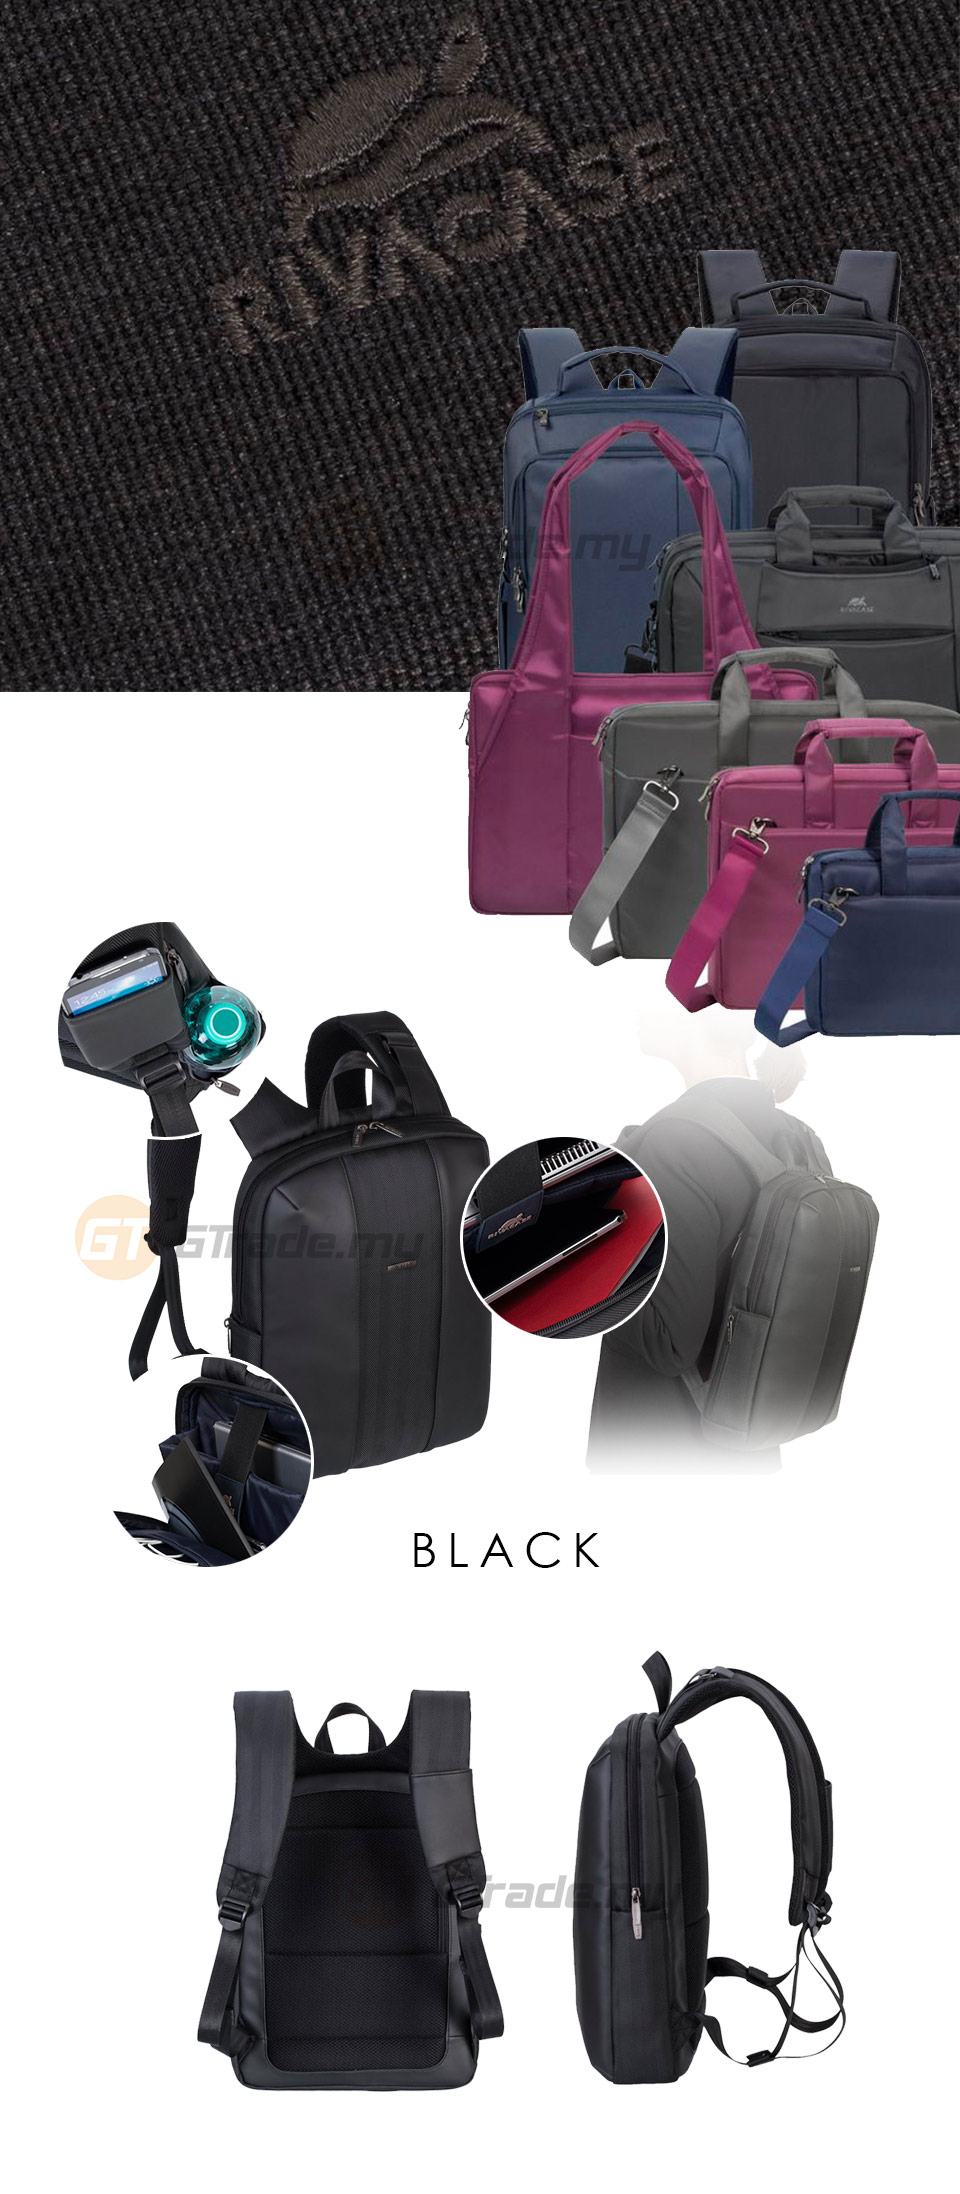 rivacase-narita-laptop-macbook-backpack-bag-14-p